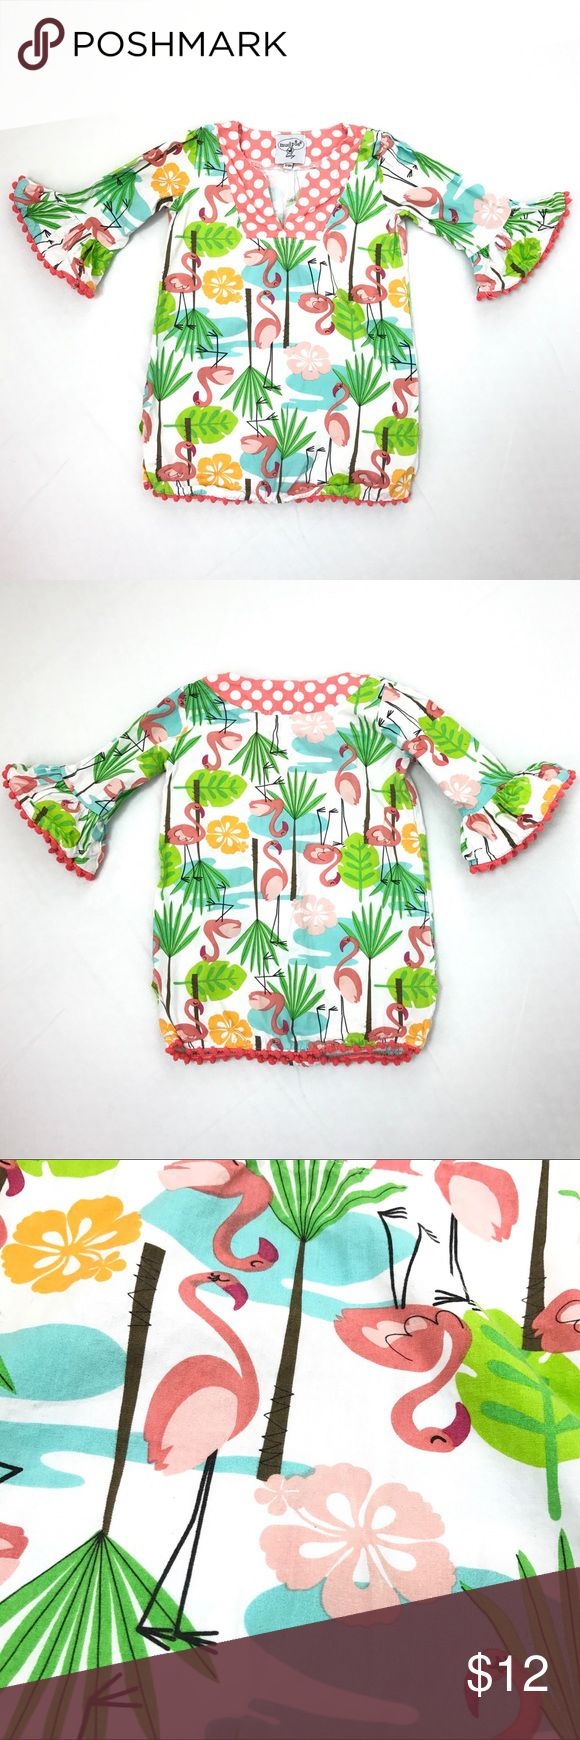 Mud Pie Baby Girl 12-18 Mo Flamingo Tunic Cover Up Mud Pie Baby girl multicolor flamingo print tunic/dress/swim cover up * size 12-18 months * 100% cotton * gently used with some wash wear, no flaws found Mud Pie Shirts & Tops